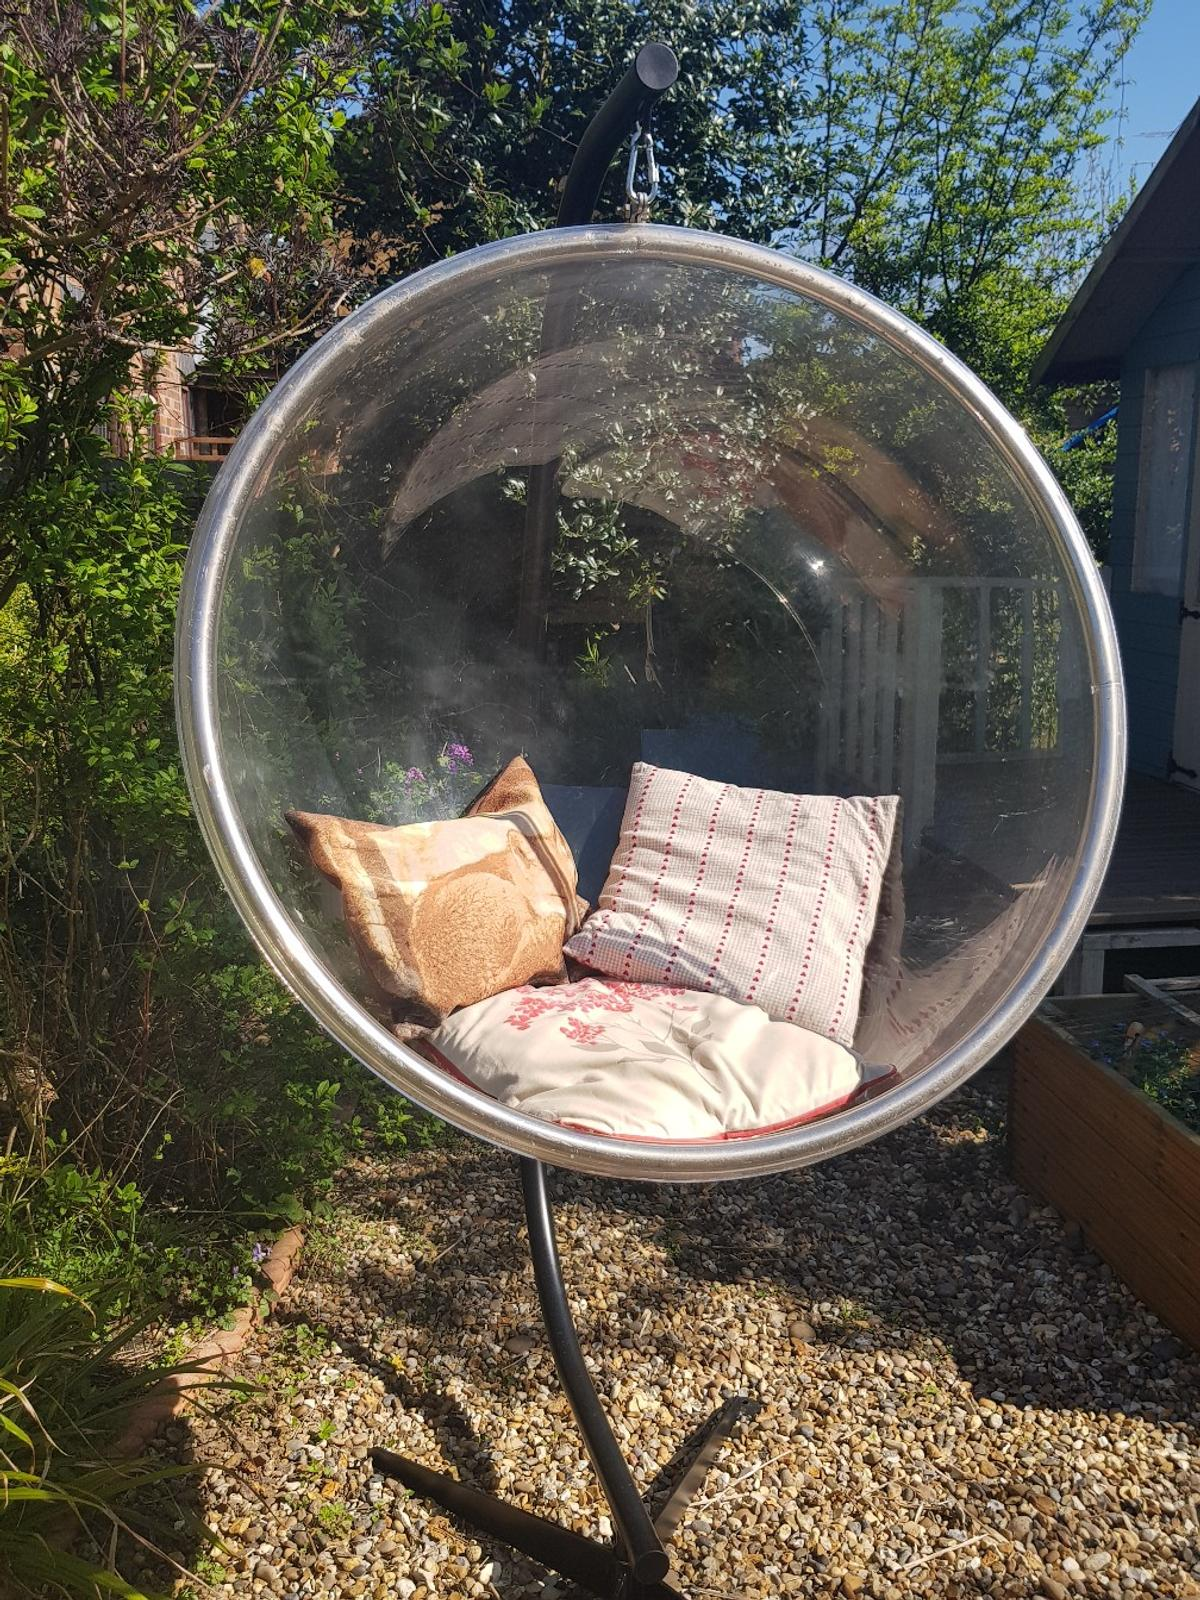 Outdoor Modern Feature Hanging Bubble Chair In Wd25 Watford For 200 00 For Sale Shpock